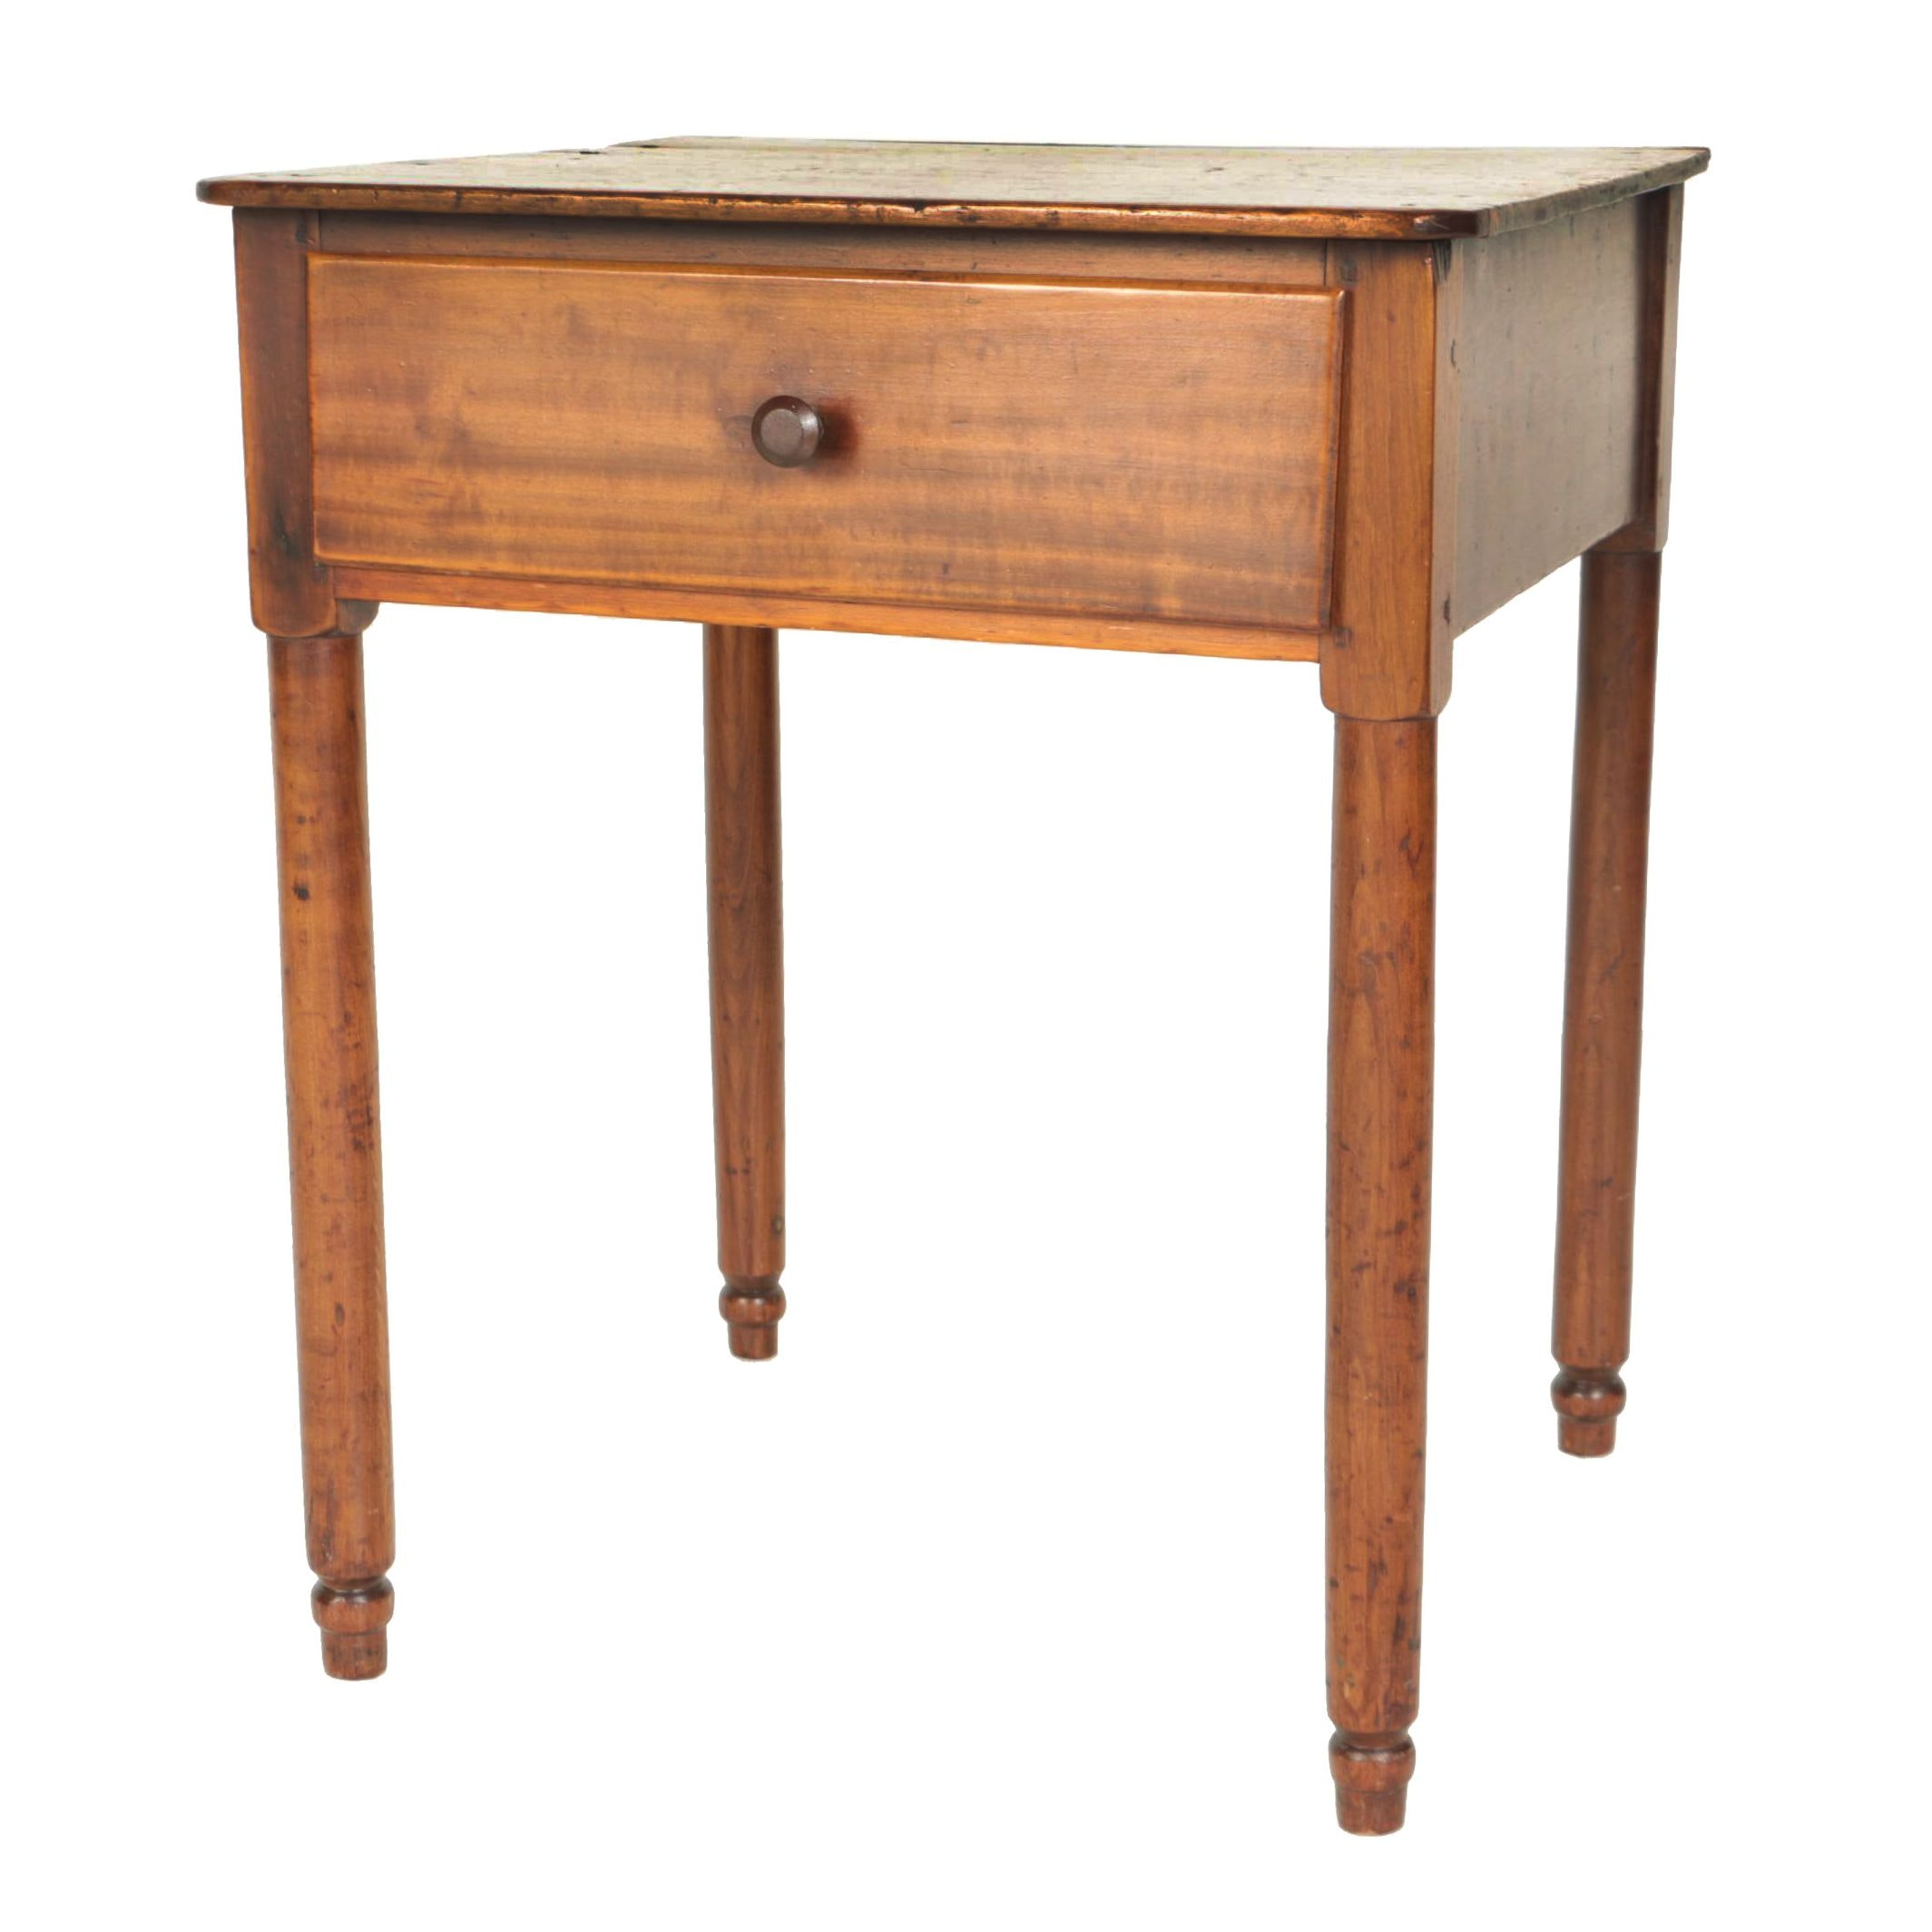 American Pine and Cherrywood Side Table, Second Quarter 19th Century